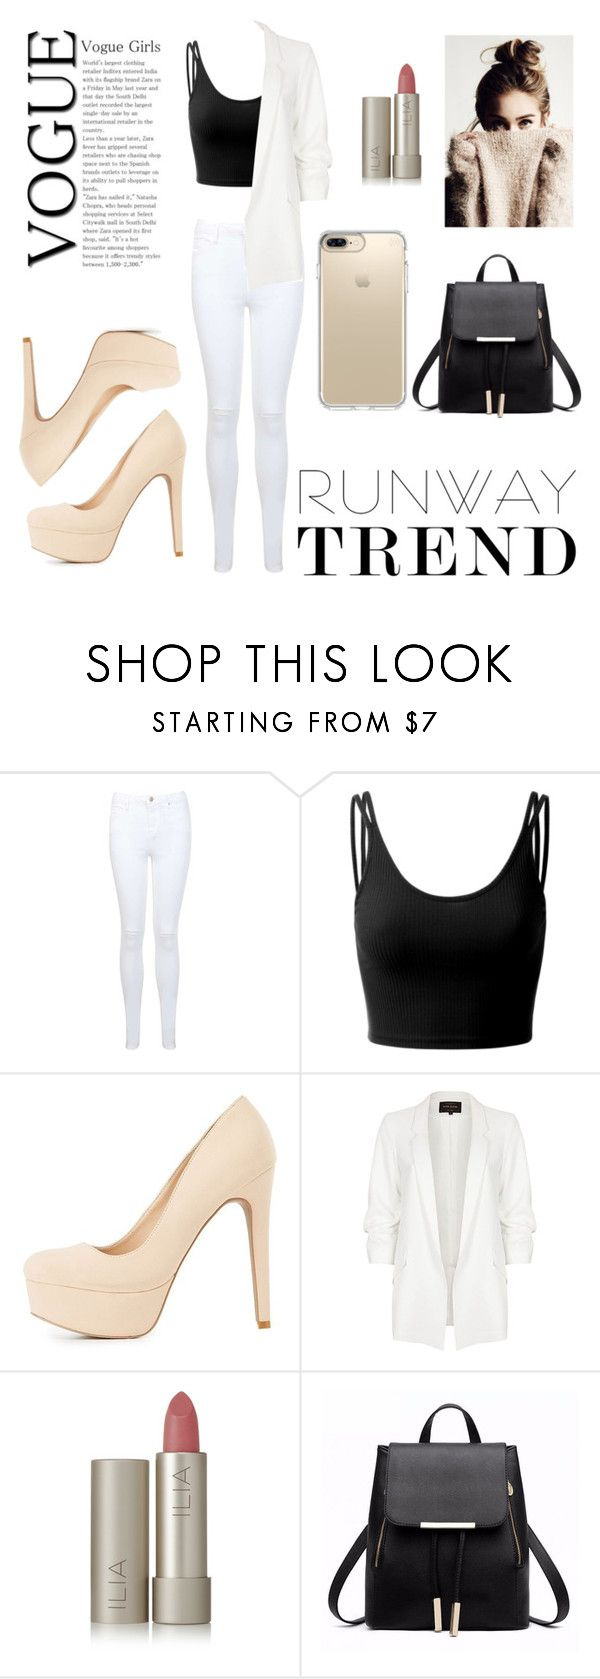 """""""Cool Girl"""" by eva-tabert ❤ liked on Polyvore featuring Miss Selfridge, Doublju, Charlotte Russe, River Island, Ilia and Speck"""